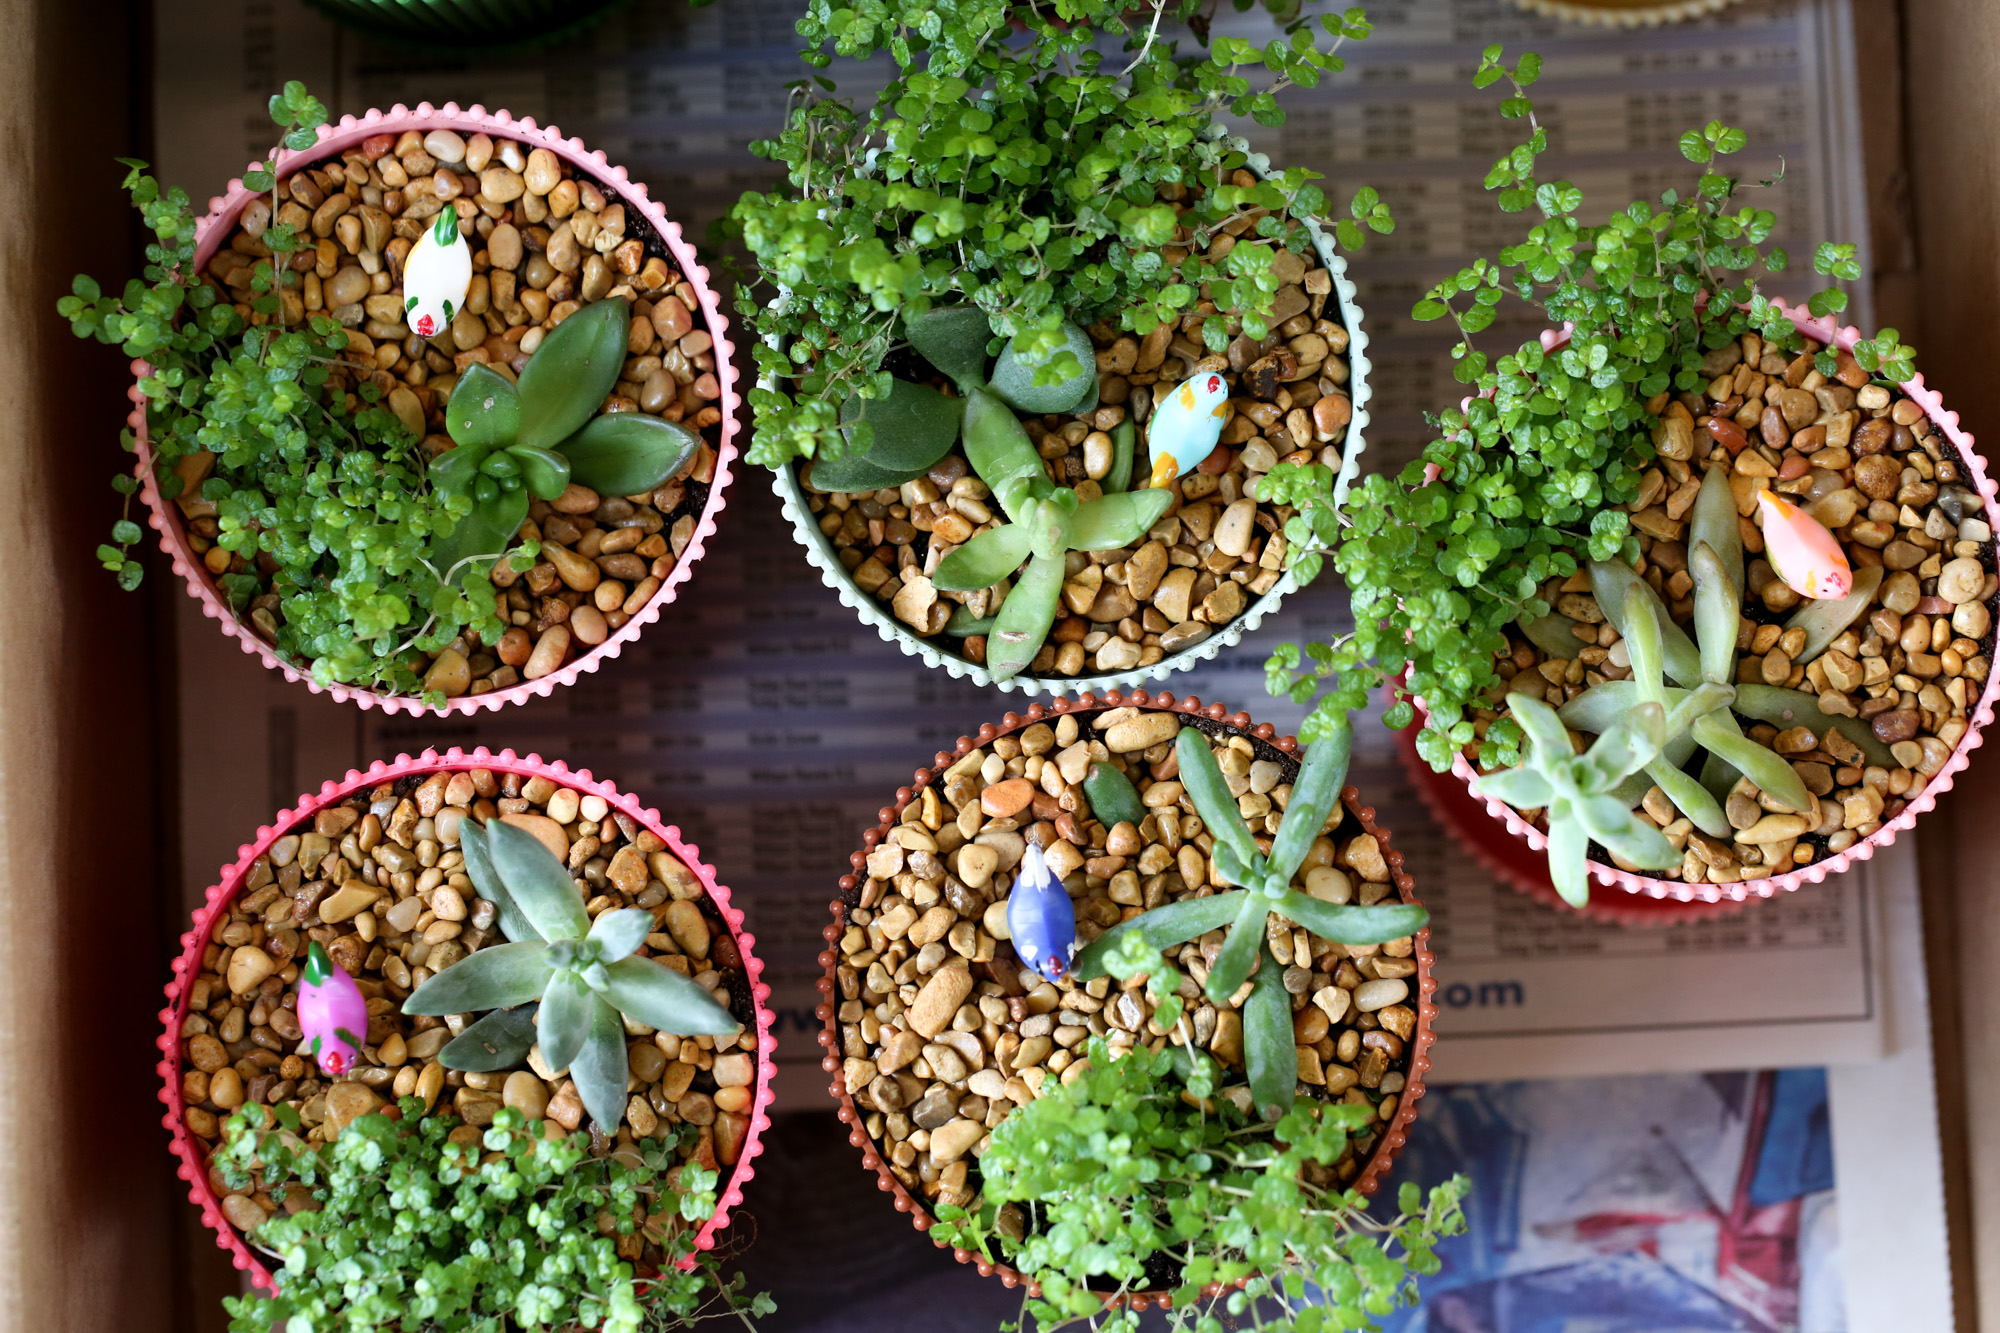 Miniature Chicken Garden